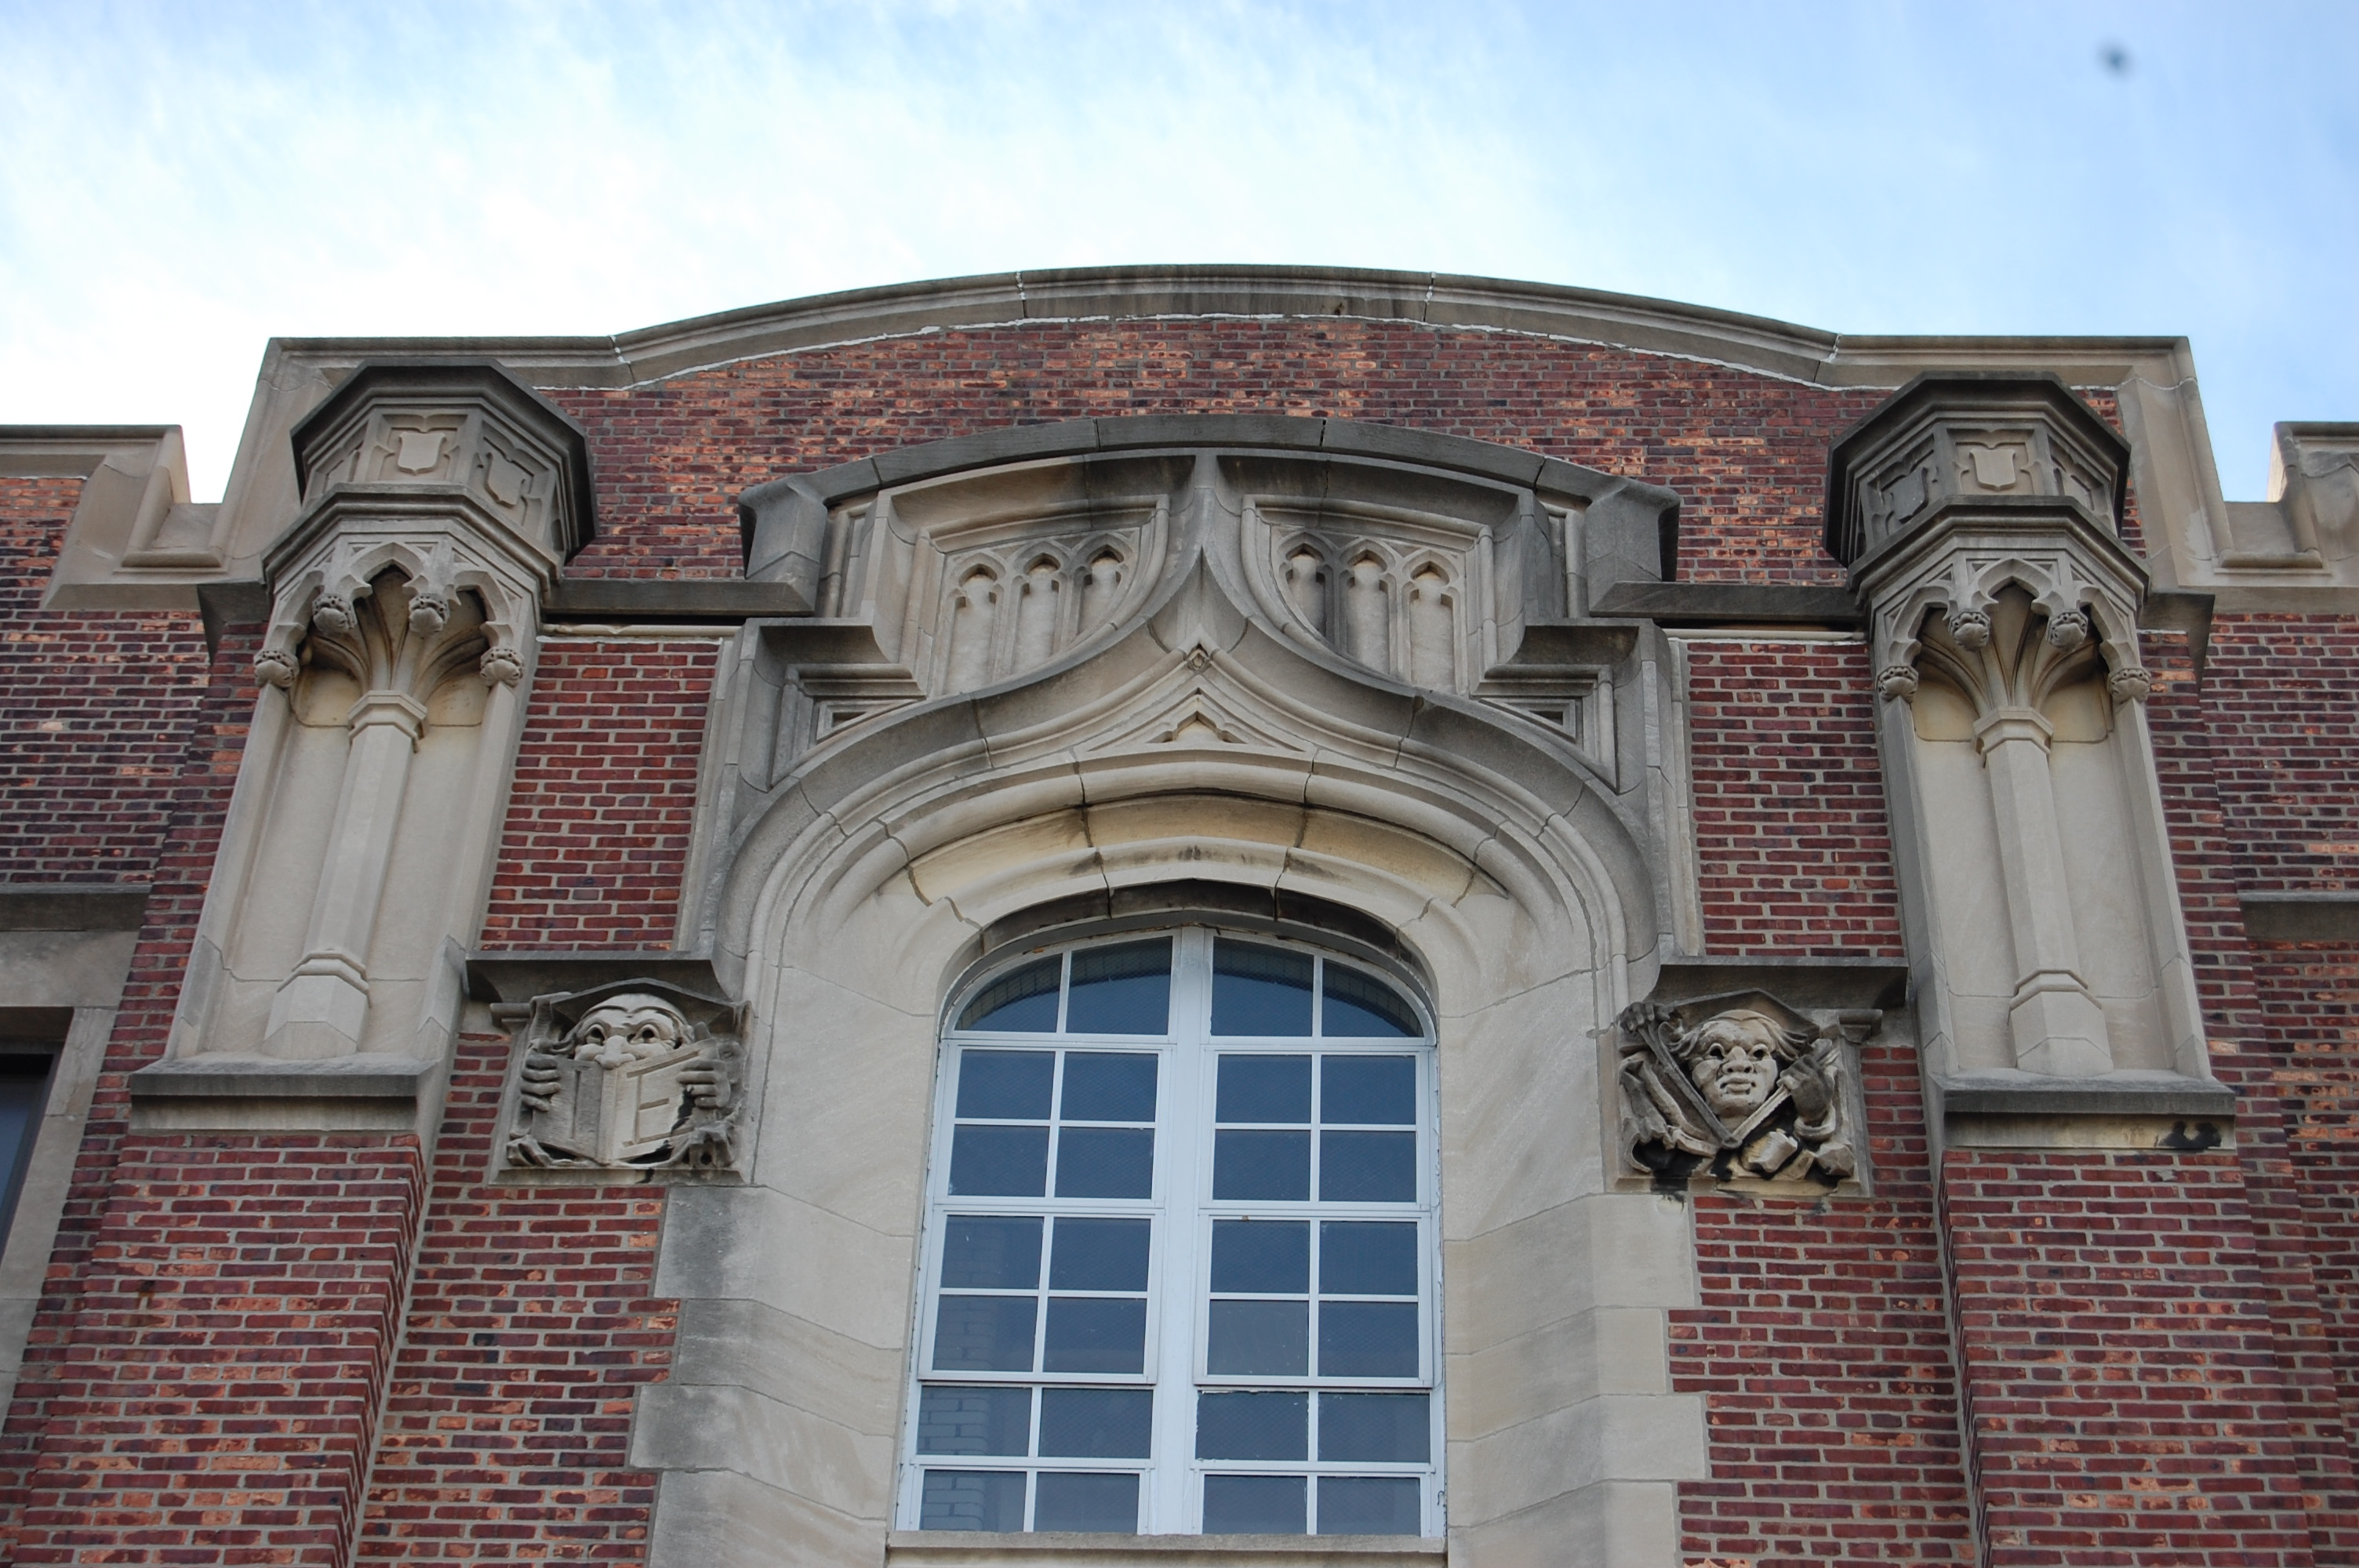 Gothic details were common in deCourcy Richards buildings. He designed 30 schools for the district.